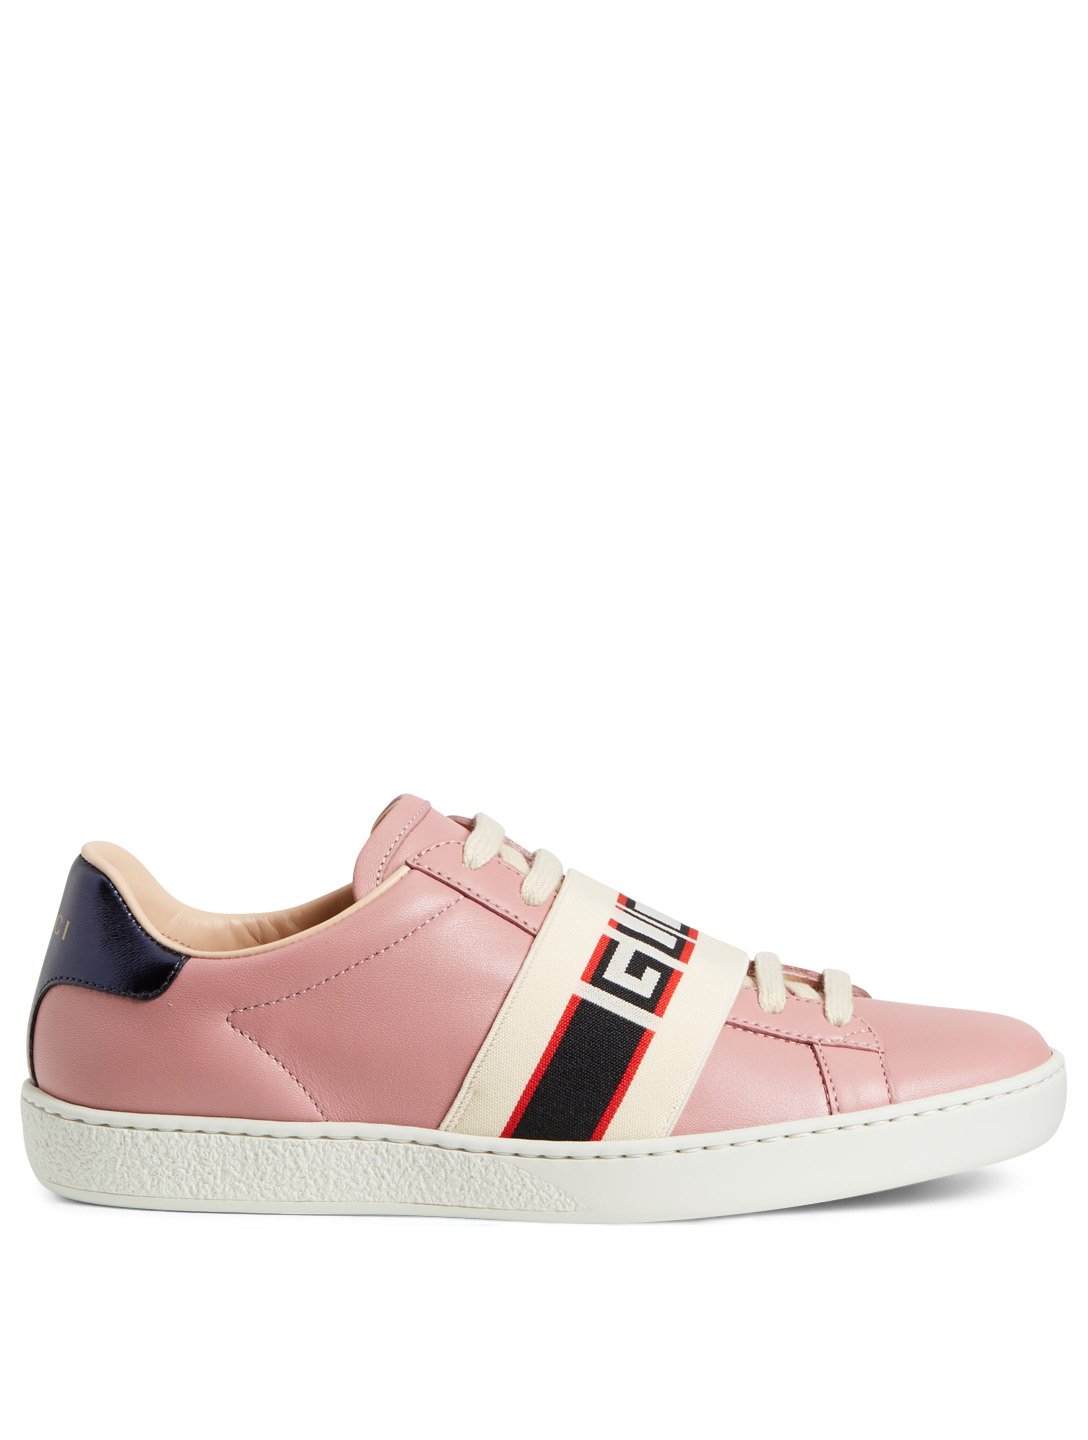 70f6f4c6b42 GUCCI New Ace Leather Sneakers With Logo Strap